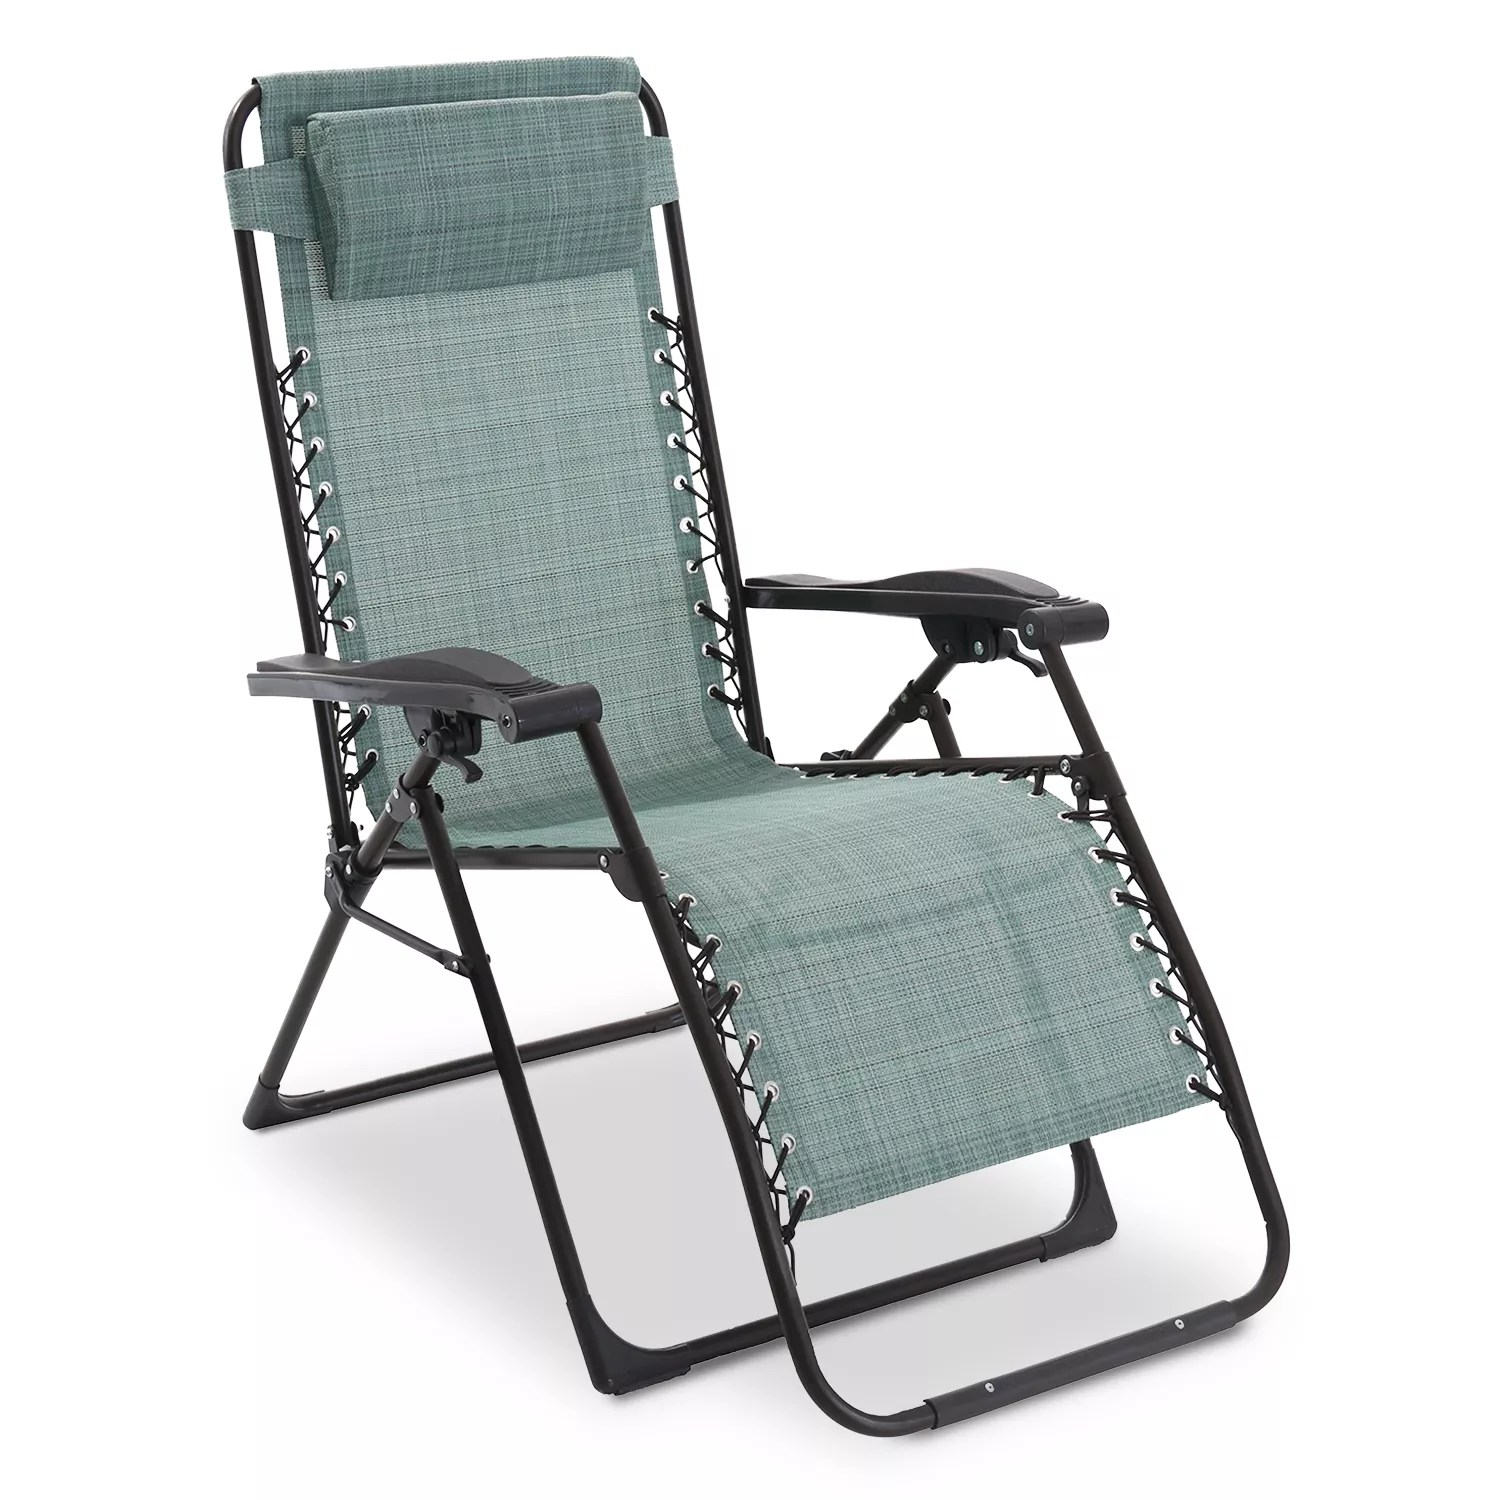 sonoma anti gravity chair review animal print high goods for life patio antigravity